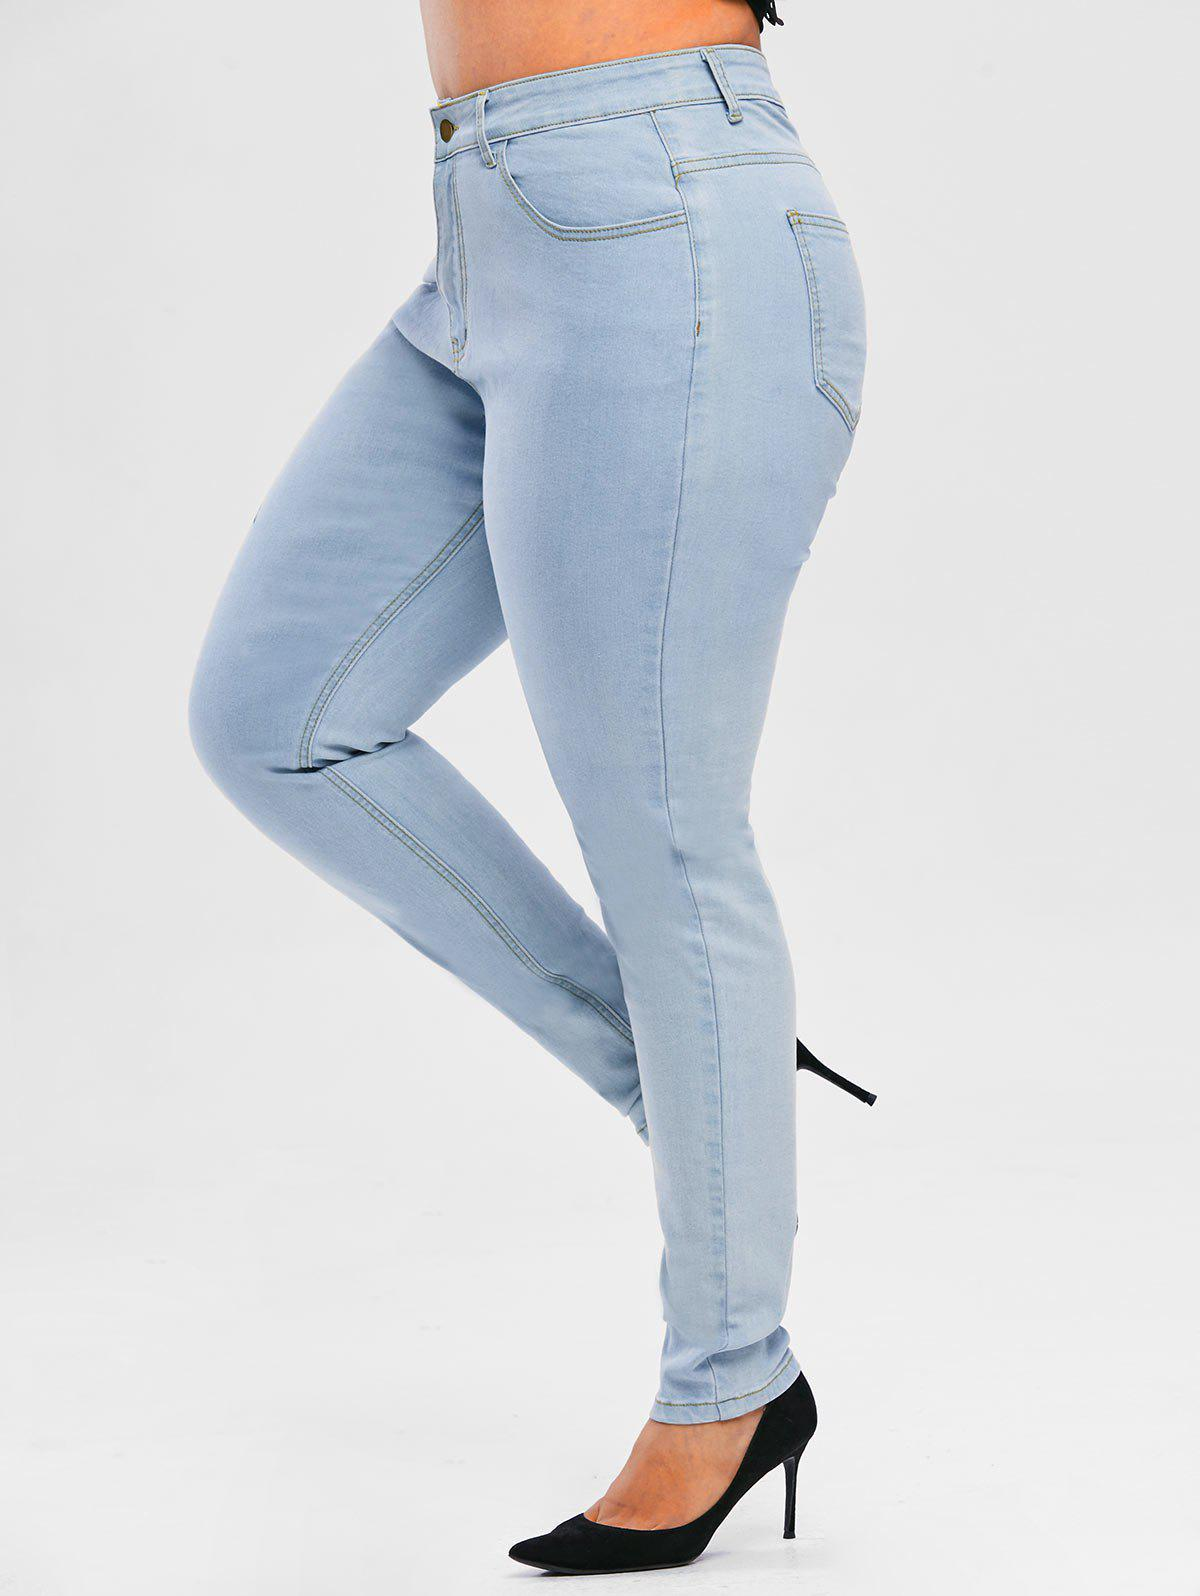 Floral Side Light Wash Plus Size Skinny Jeans - LIGHT BLUE 1X